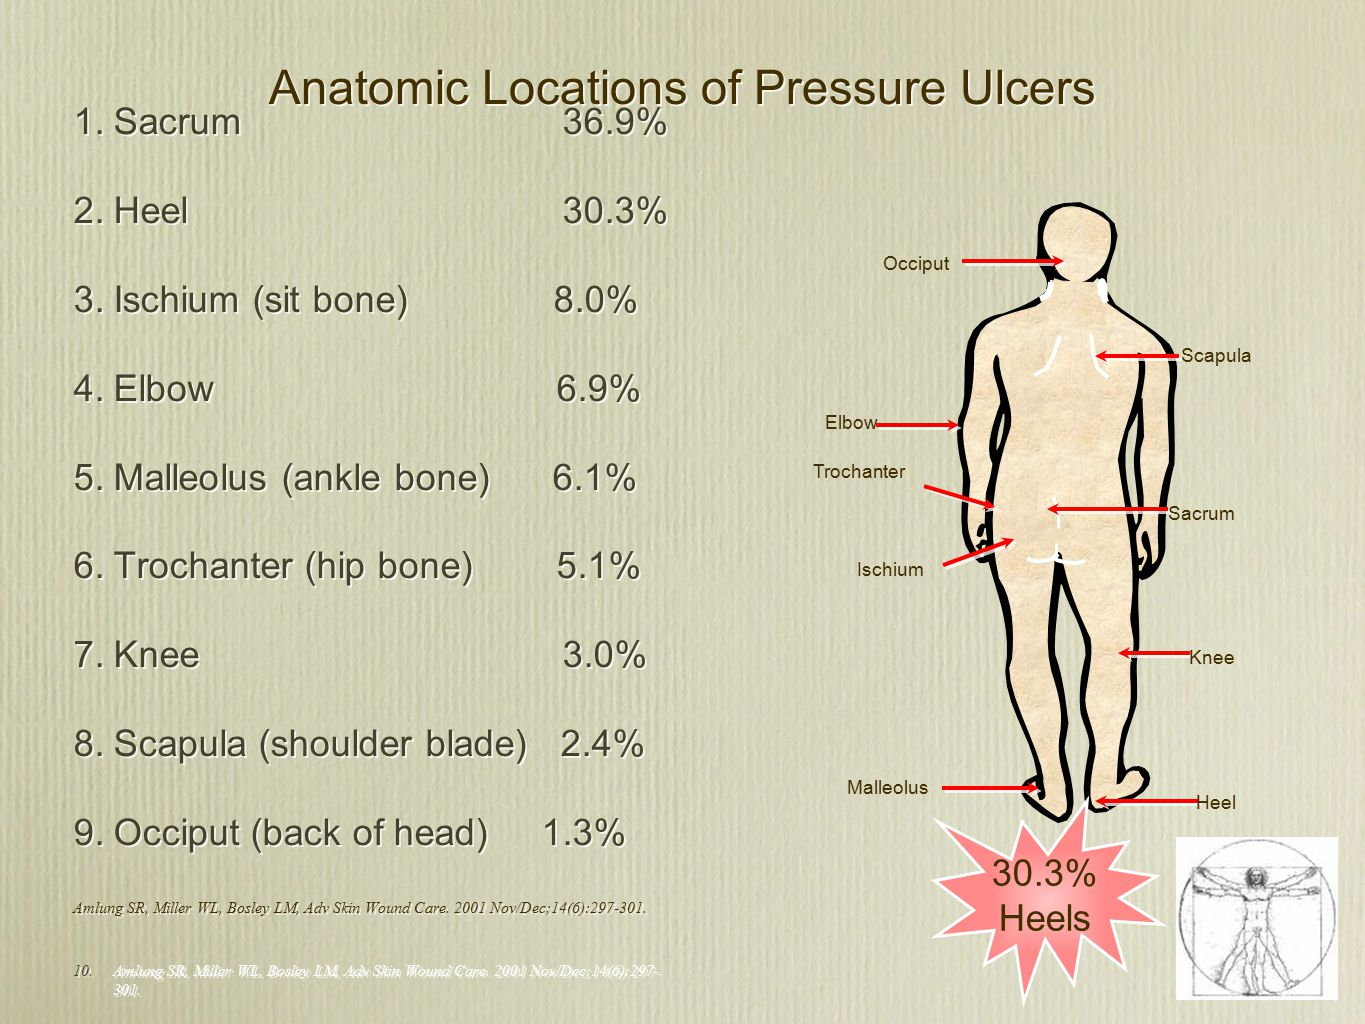 hight resolution of anatomic locations of pressure ulcers